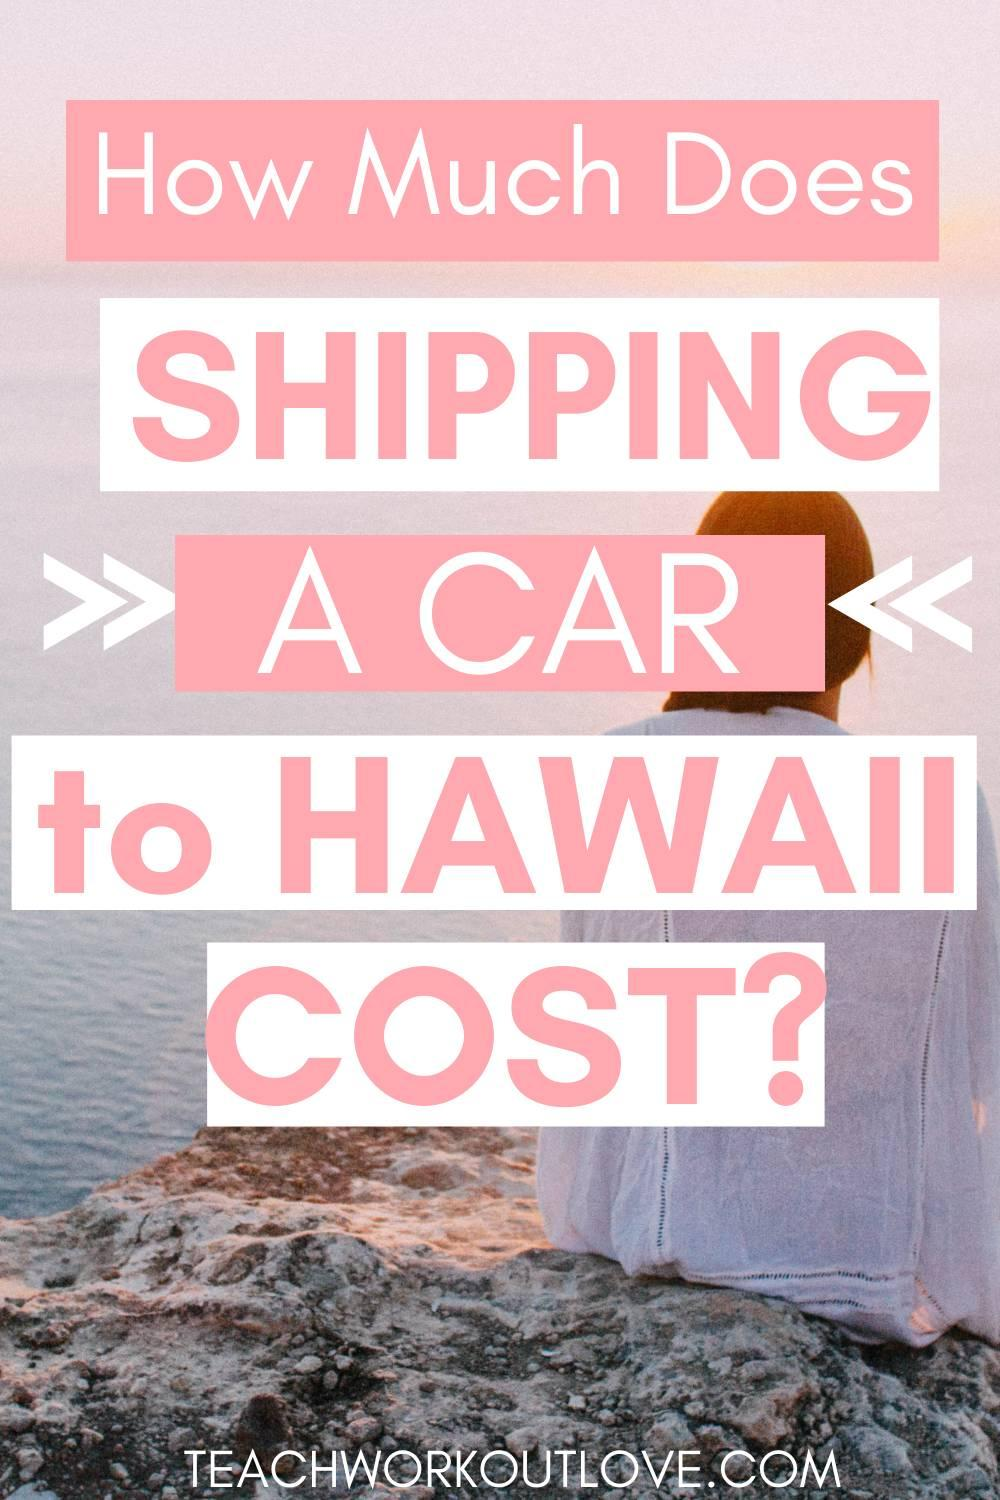 Here is an all-inclusive guide on how much is the total charge for shipping car to Hawaii from the U.S. mainland, with all the fine points considered.